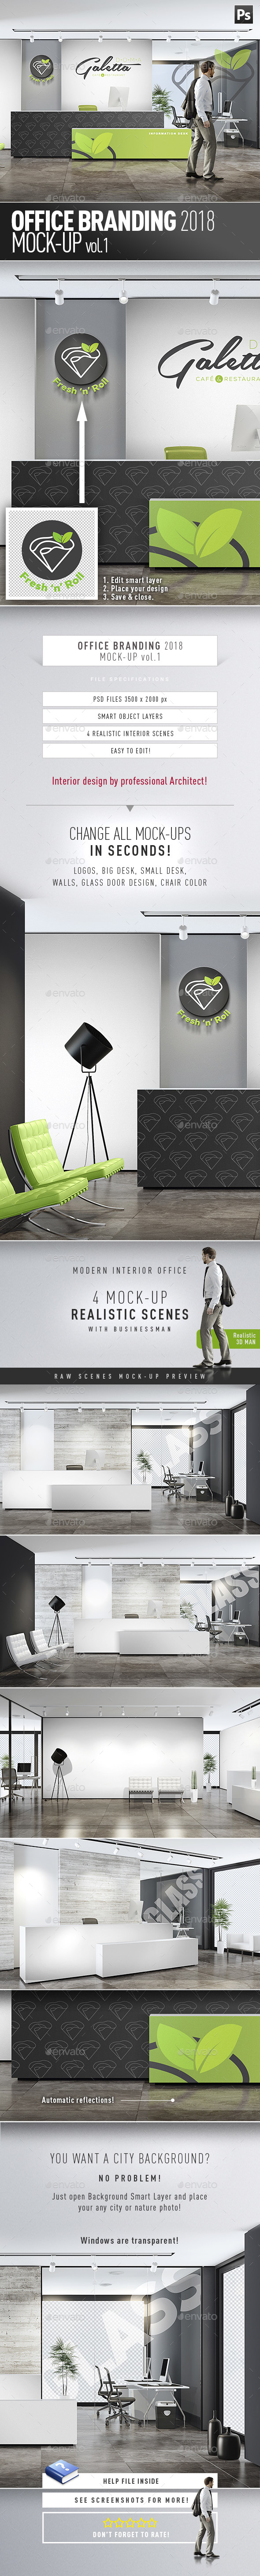 Office Branding Mock-up vol.1 - Product Mock-Ups Graphics